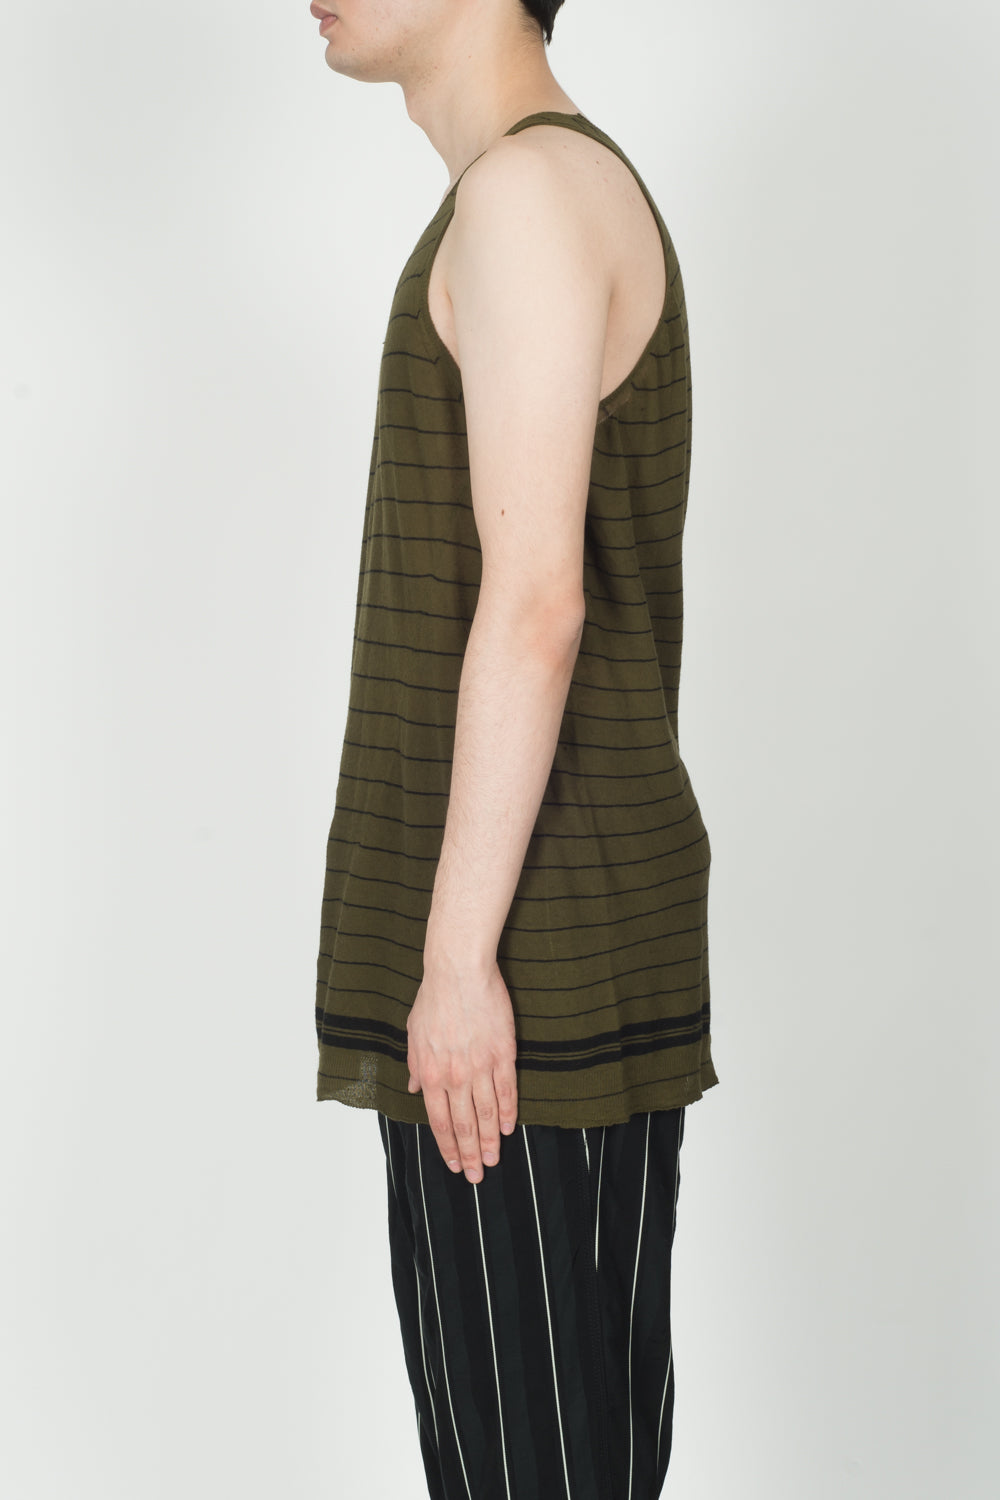 Haider Ackermann Haddad Knitted Tanktop In Ivory